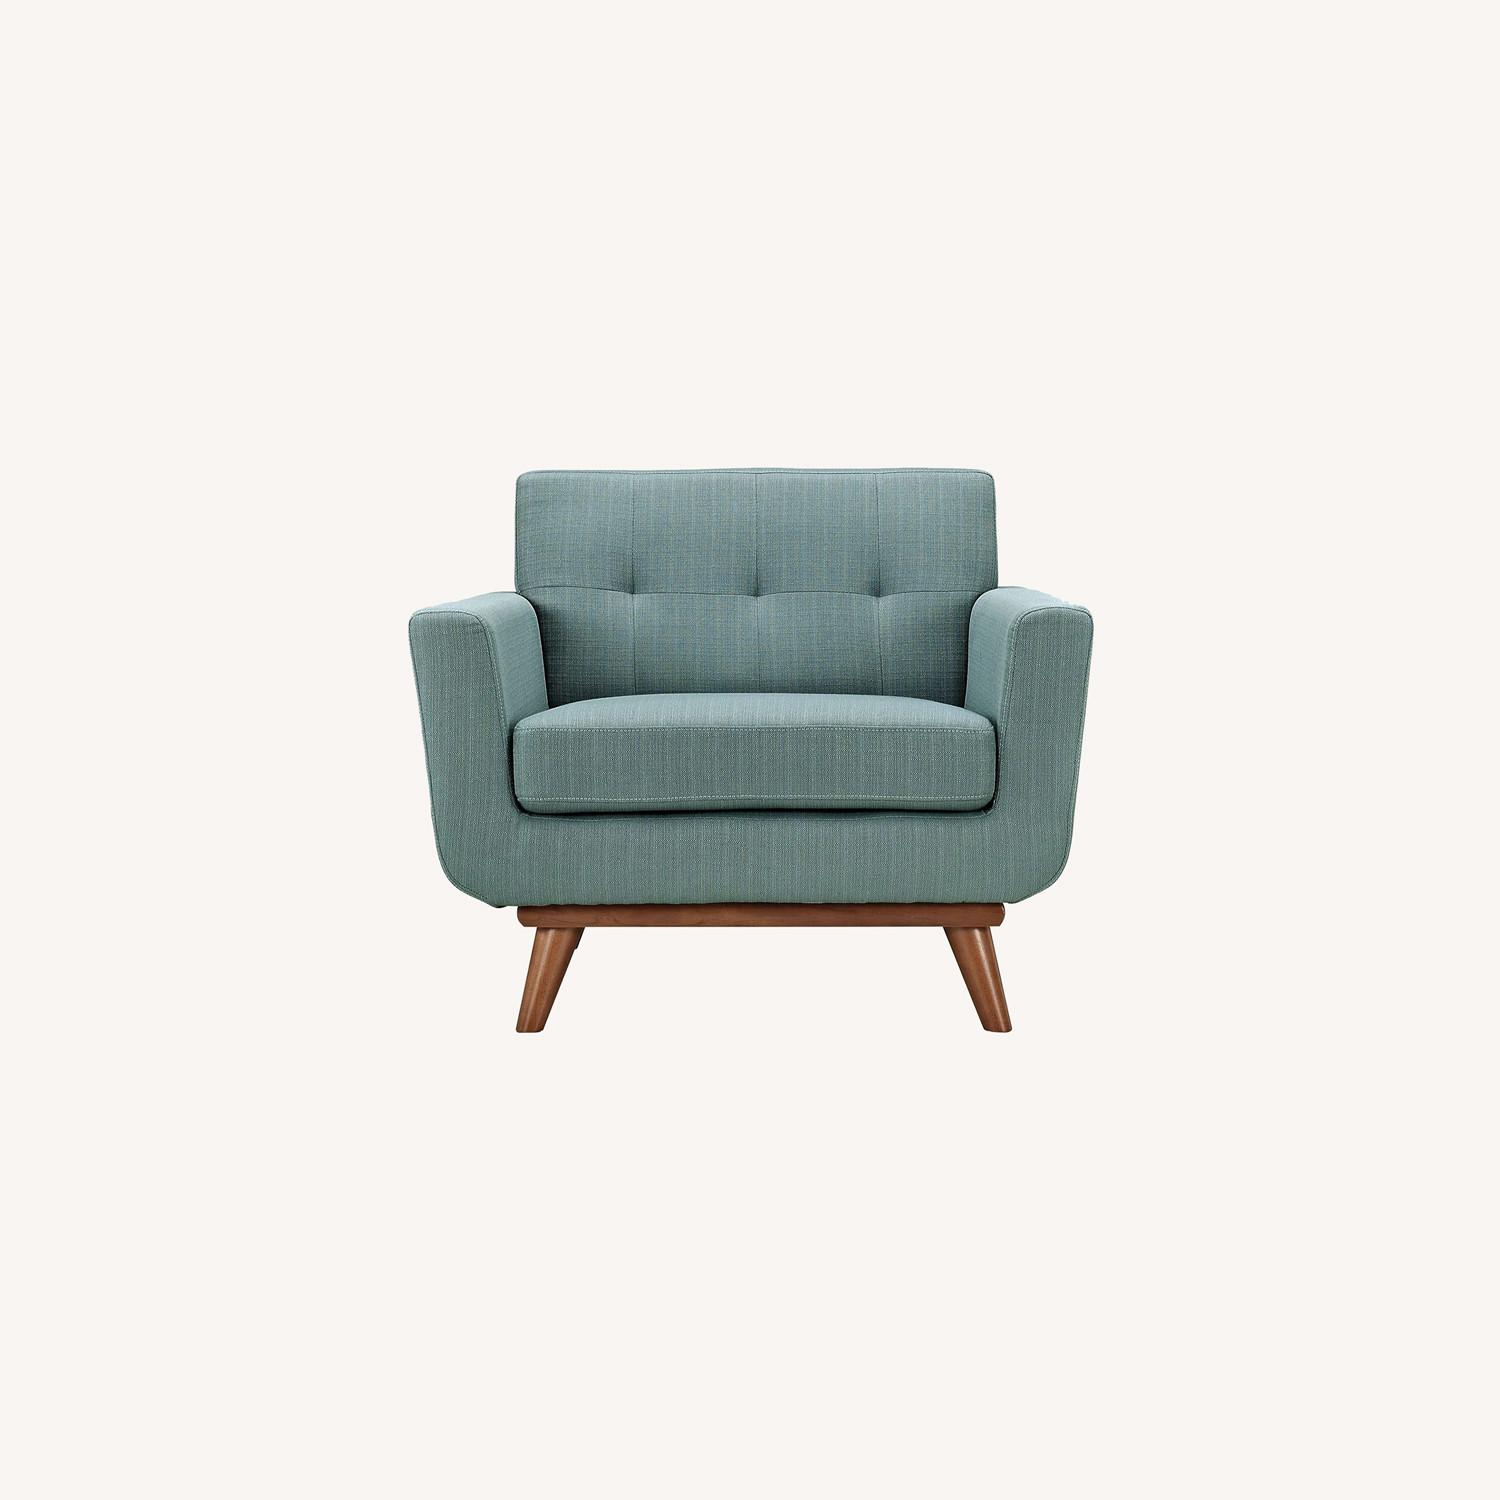 Armchair In Laguna Fabric W/ 3 Tufted Buttons - image-6